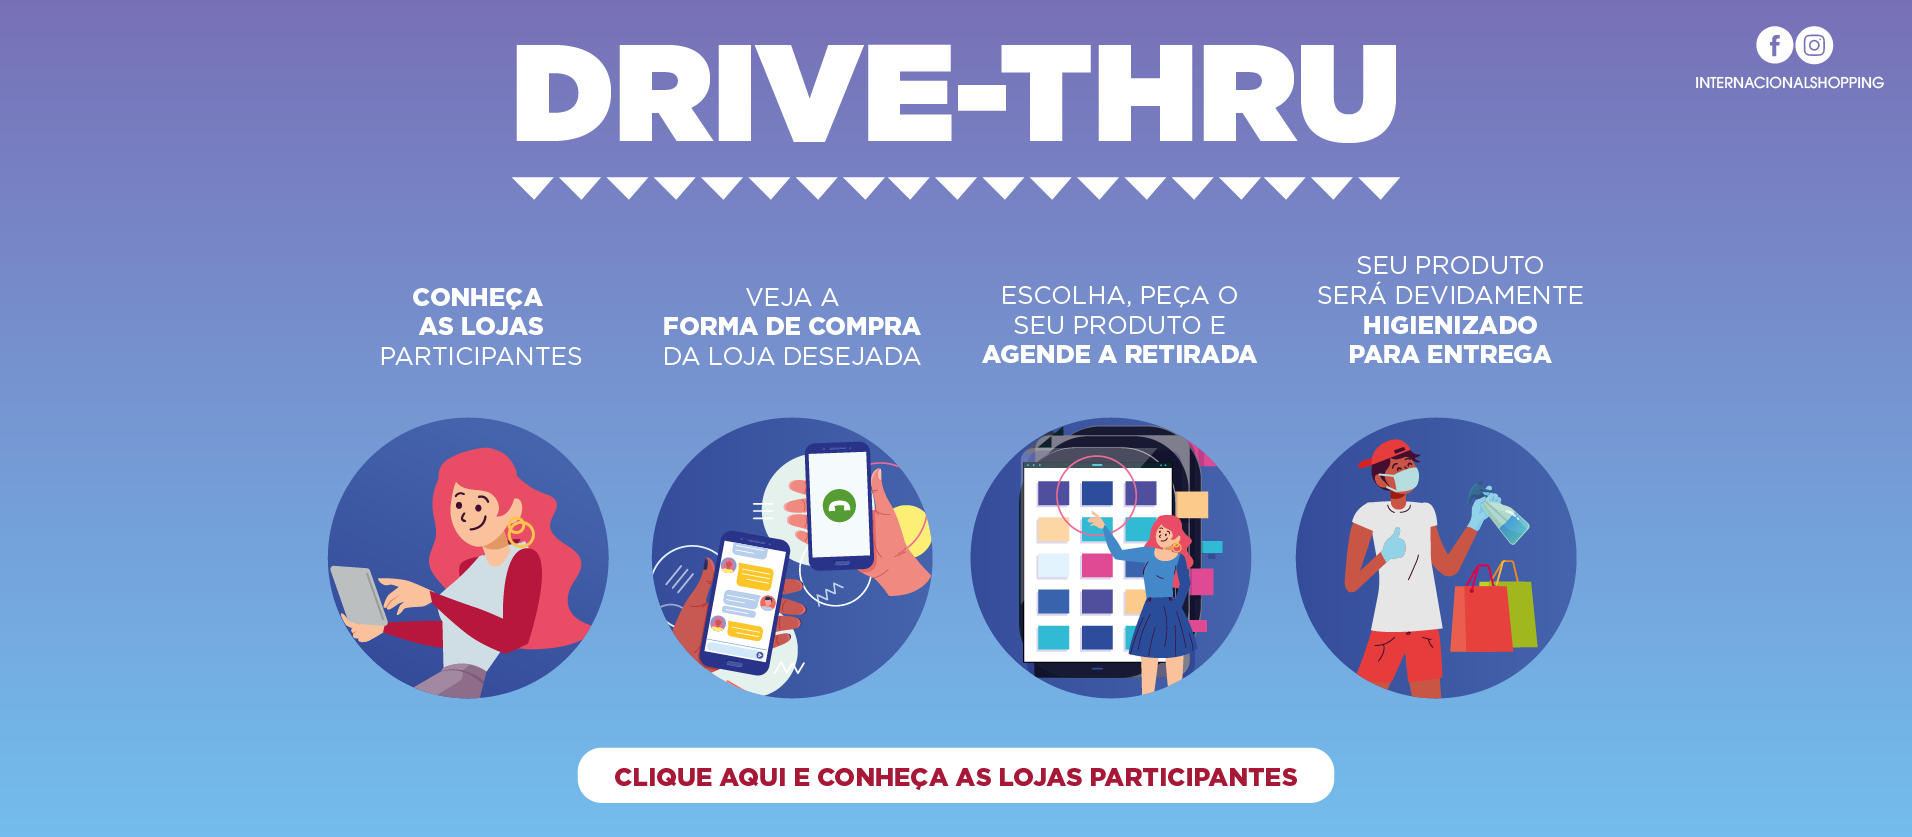 Drive-Thru Internacional Shopping